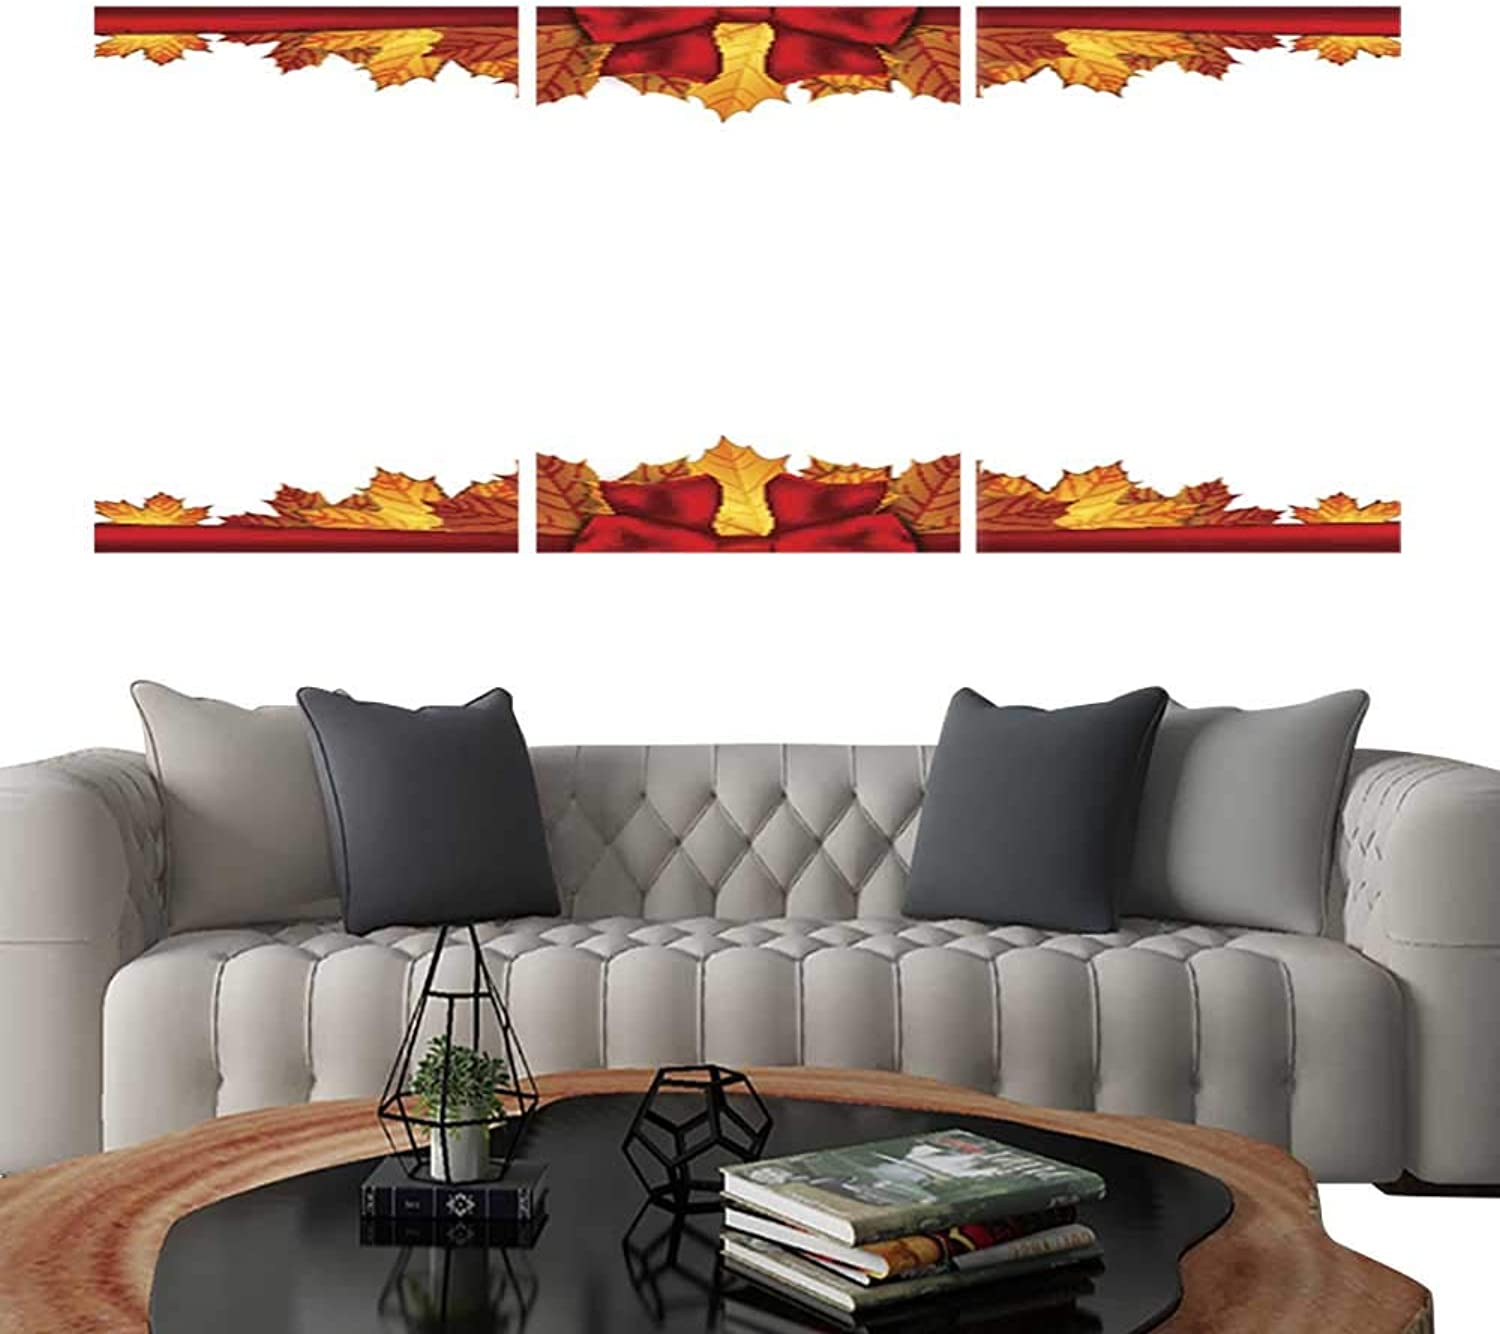 UHOO Modern Flowers PaintingBorder of Autumn maples Leaves Decorated with a red Bow 2. Bedroom Home Decorations 16 x20 x3pcs